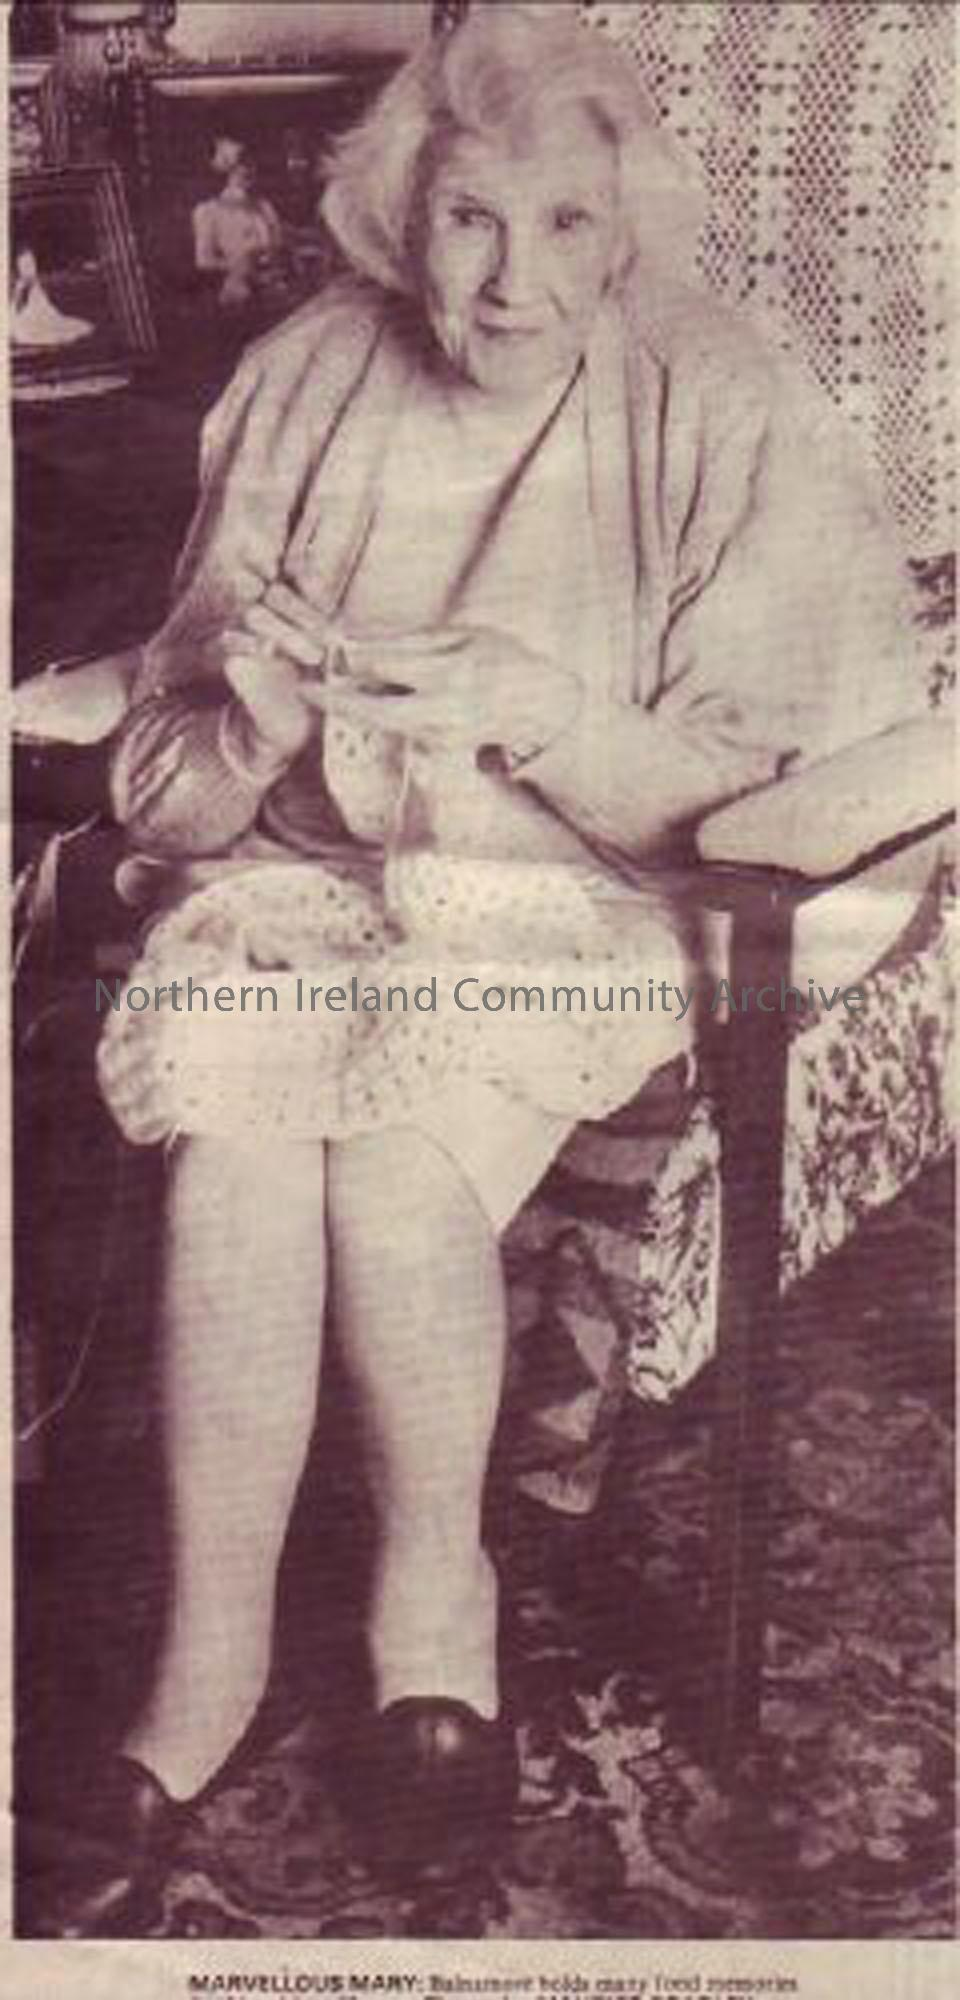 Mrs Mary Hunter in 1993. She started work at Balnamore Mill aged 14 and later became a maid at O'Hara Brook before leaving for work in Belfast.